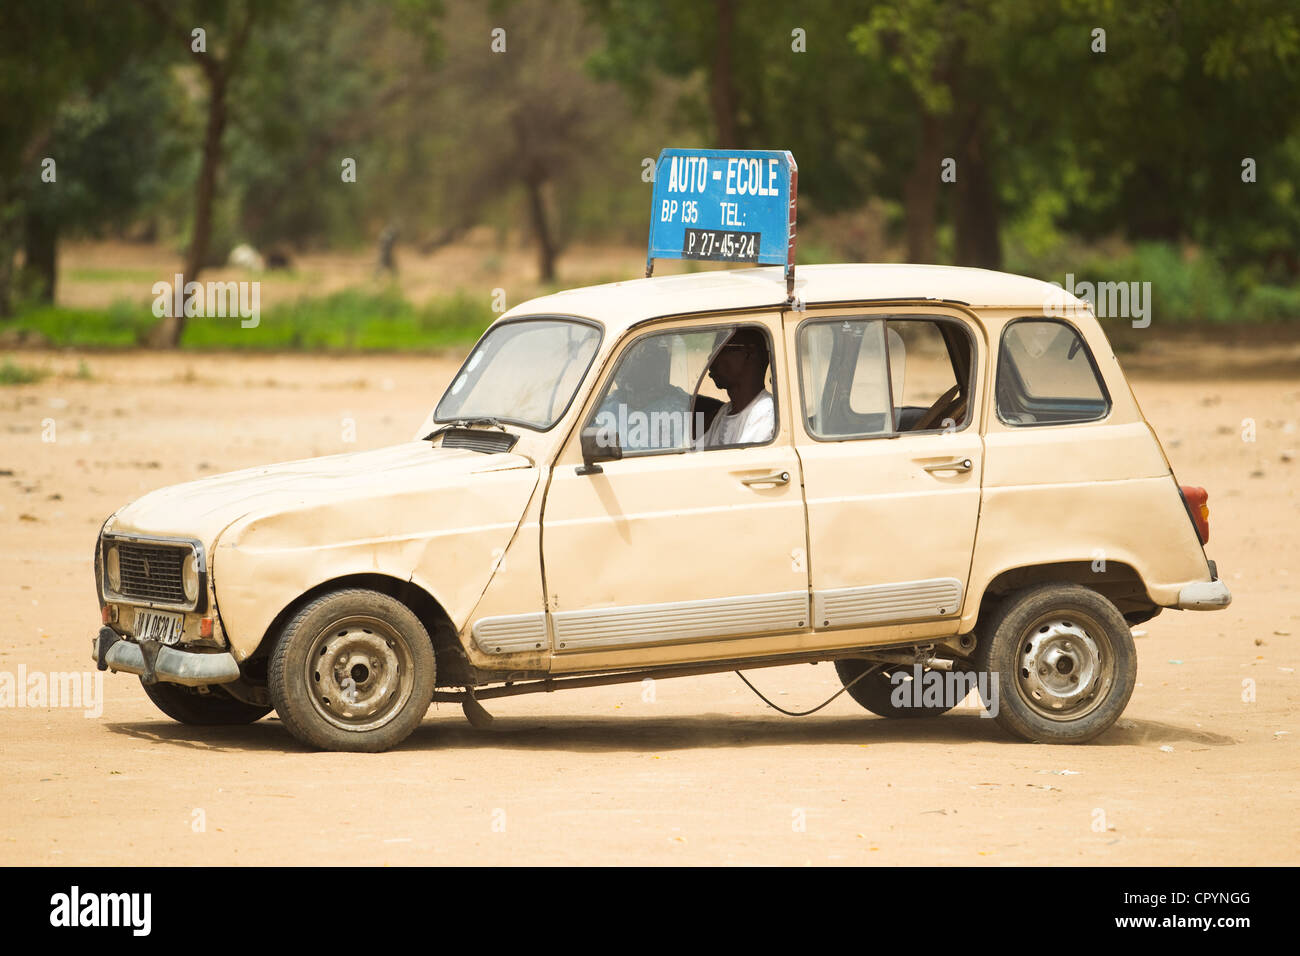 A man takes driving lessons in an open field in N'Djamena, Chad on Tuesday June 8, 2010. - Stock Image